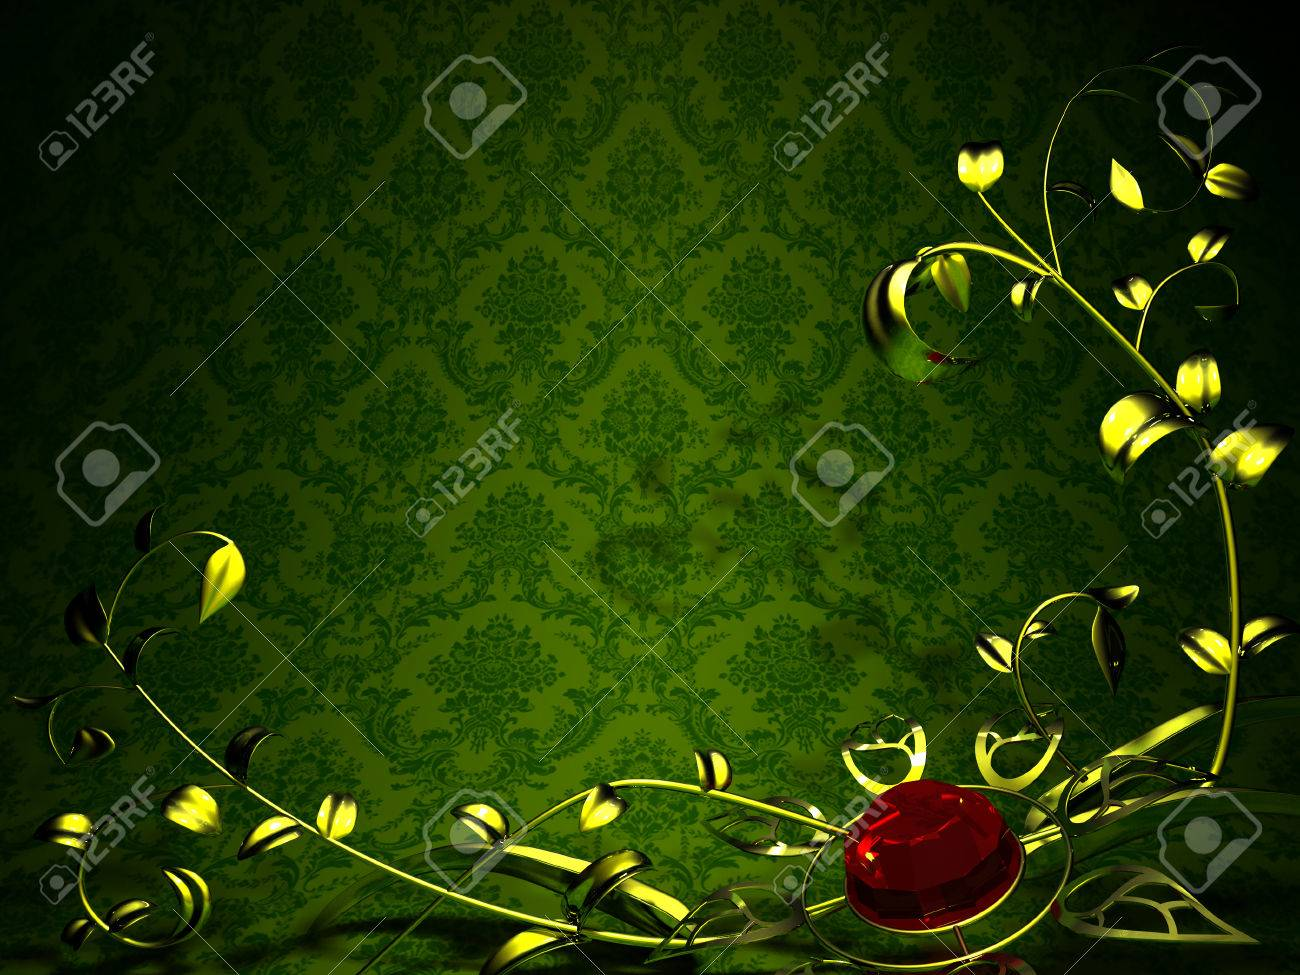 Gold Floral Design On A Background Of Vintage Green Wallpaper Flower Stock Photo